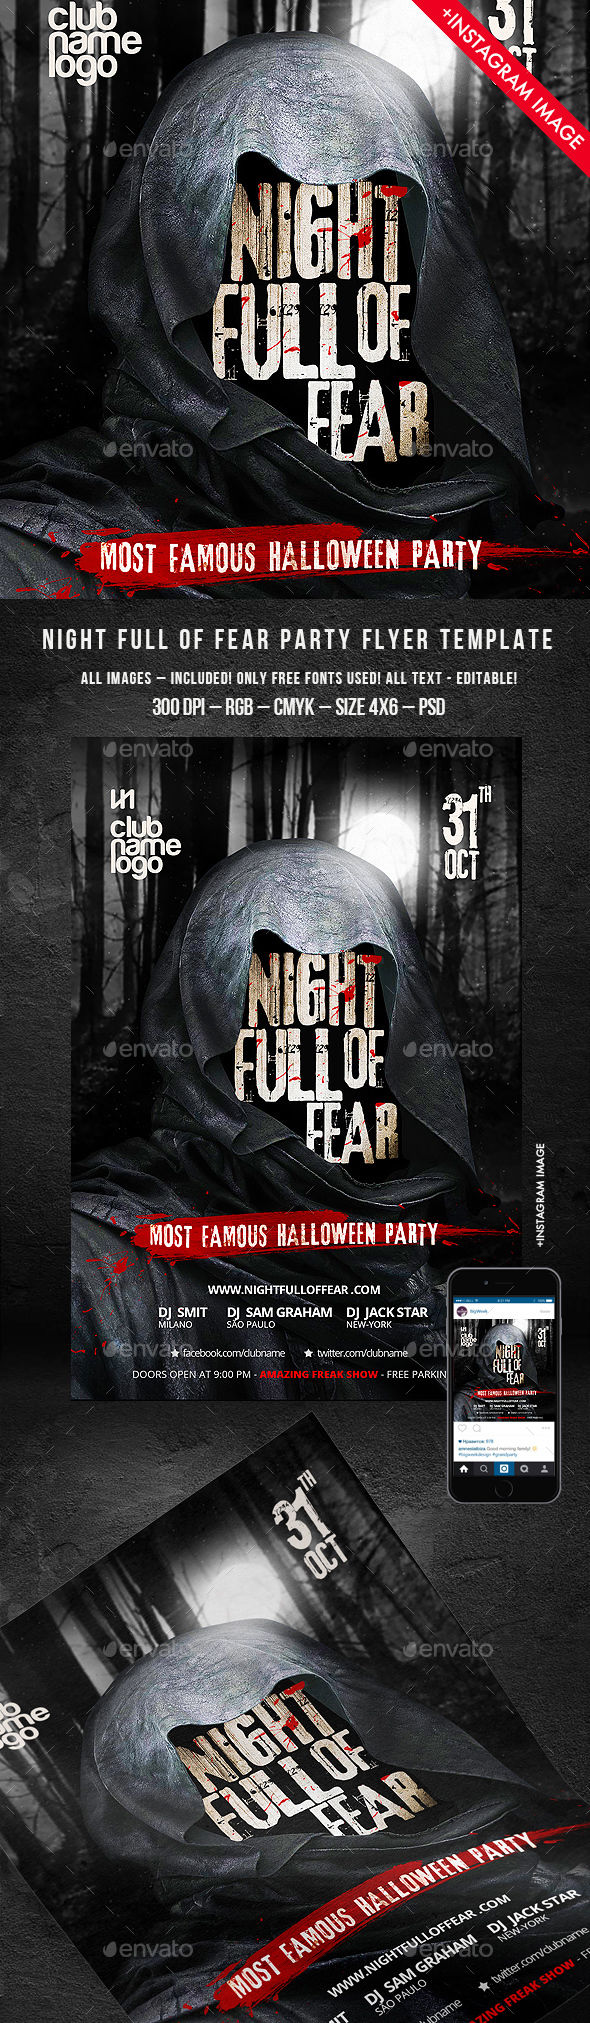 Halloween Flyer by BigWeek (Halloween party flyer)